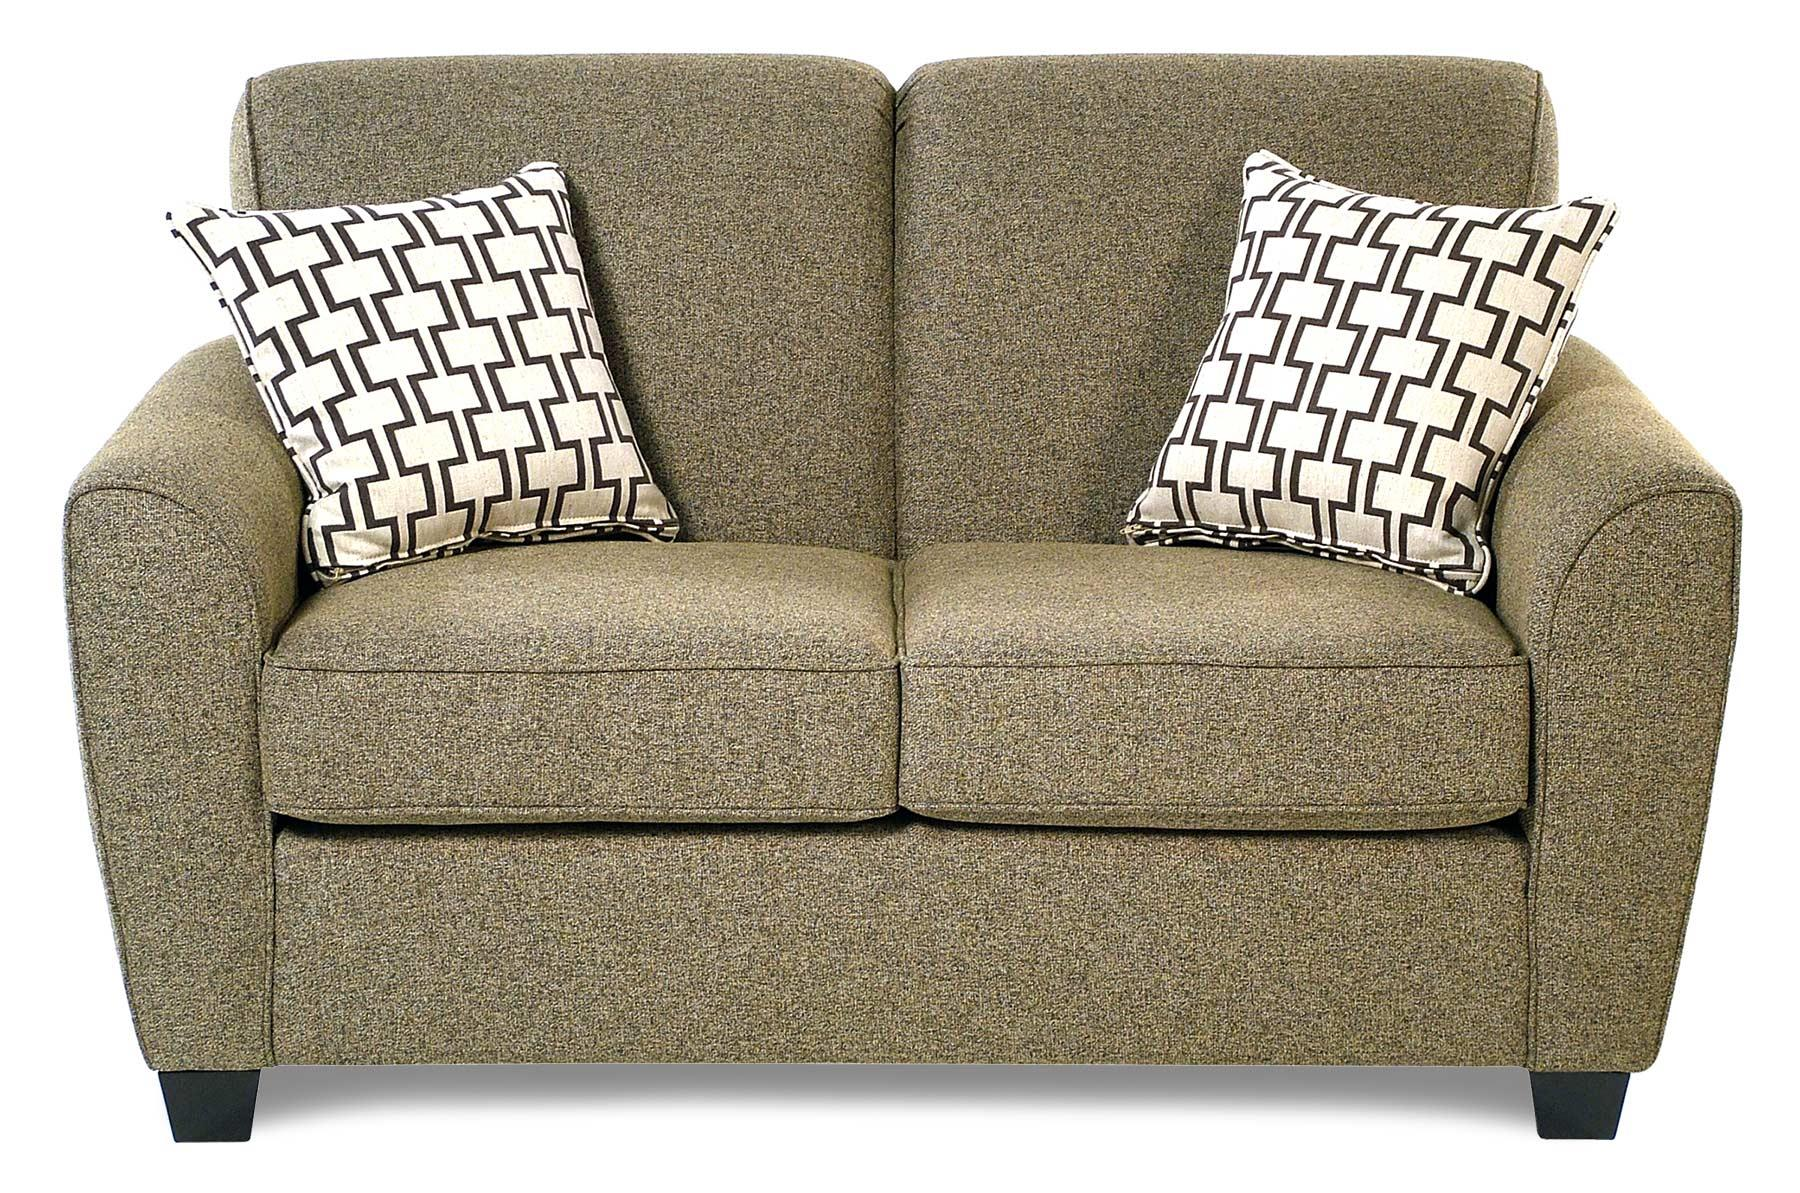 Decor-Rest Balance Transitional Loveseat w/ Flared Arms - Item Number: 2404-LS-ESP